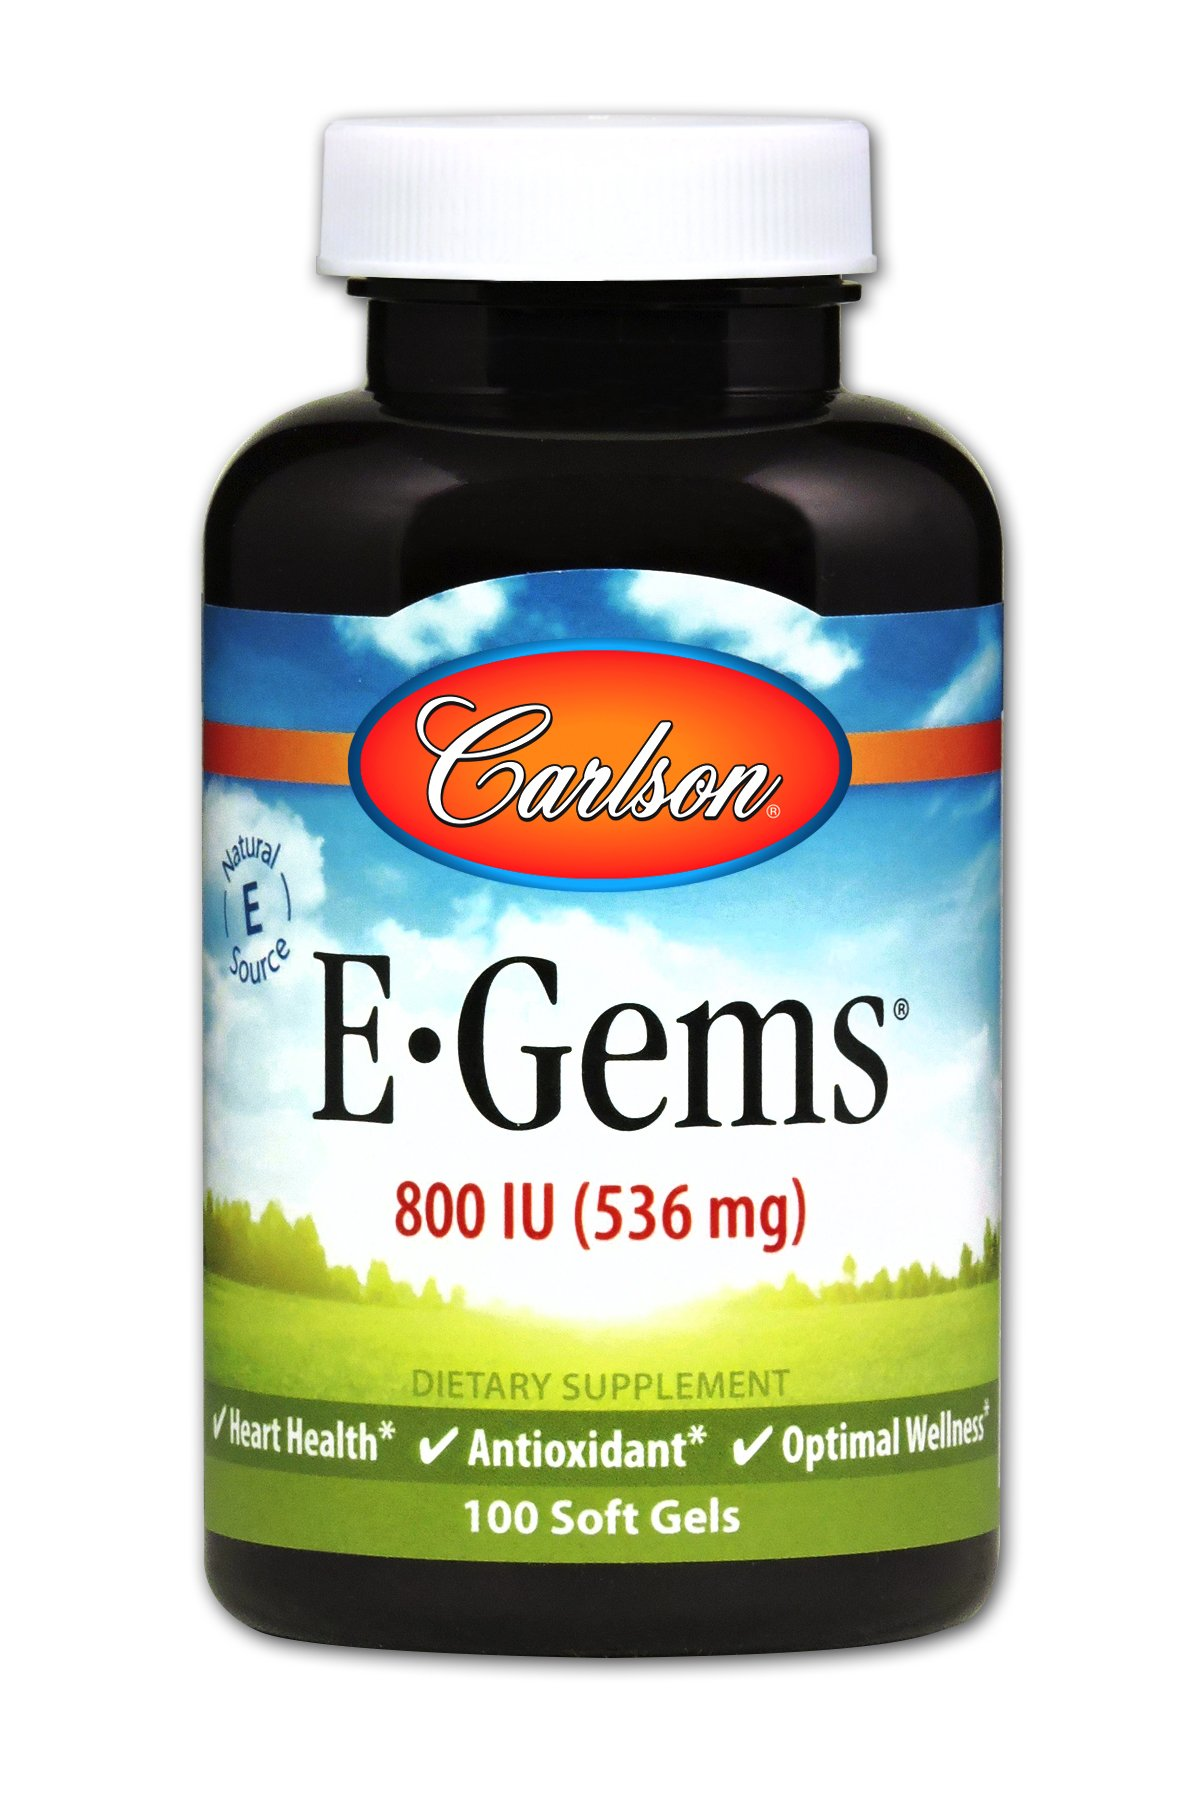 Carlson E-Gems 800 IU, Vitamin E, Heart Health (100 Soft Gels)